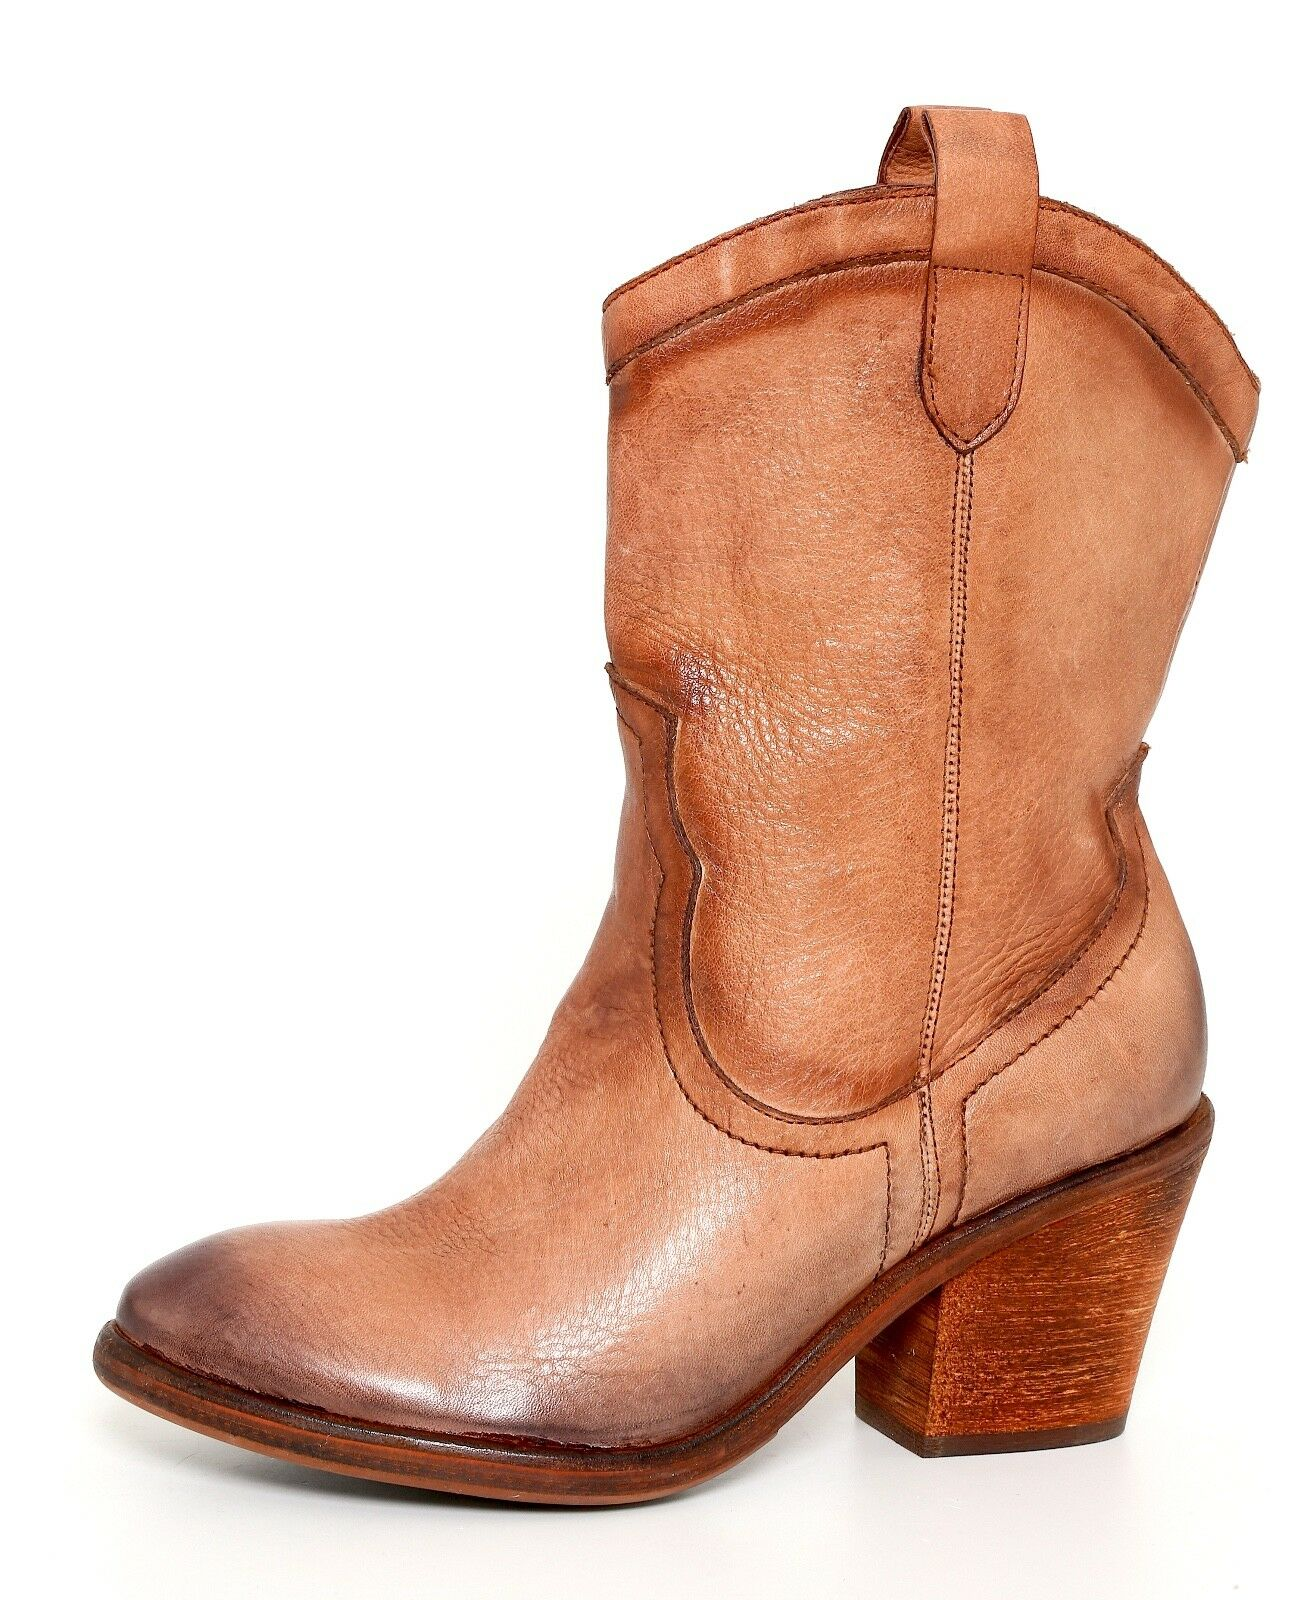 Sam Edelman Nile Whiskey Western Ankle Distressed Brown Boots 4890* Size 7.5 M